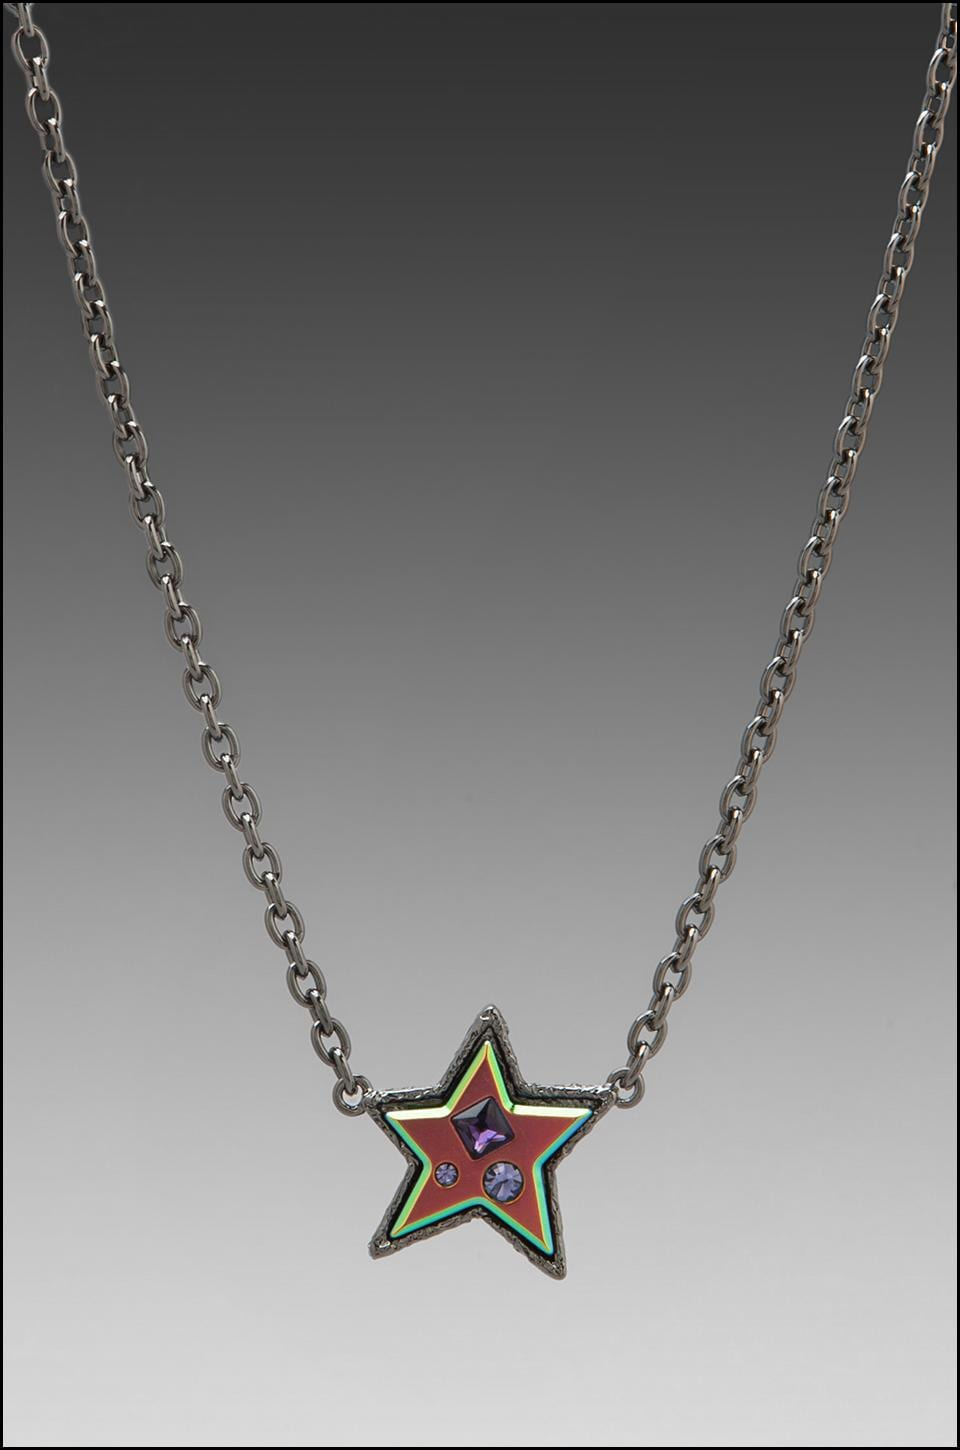 Marc by Marc Jacobs Reluctant Stars Chunky Star Necklace in Hematite